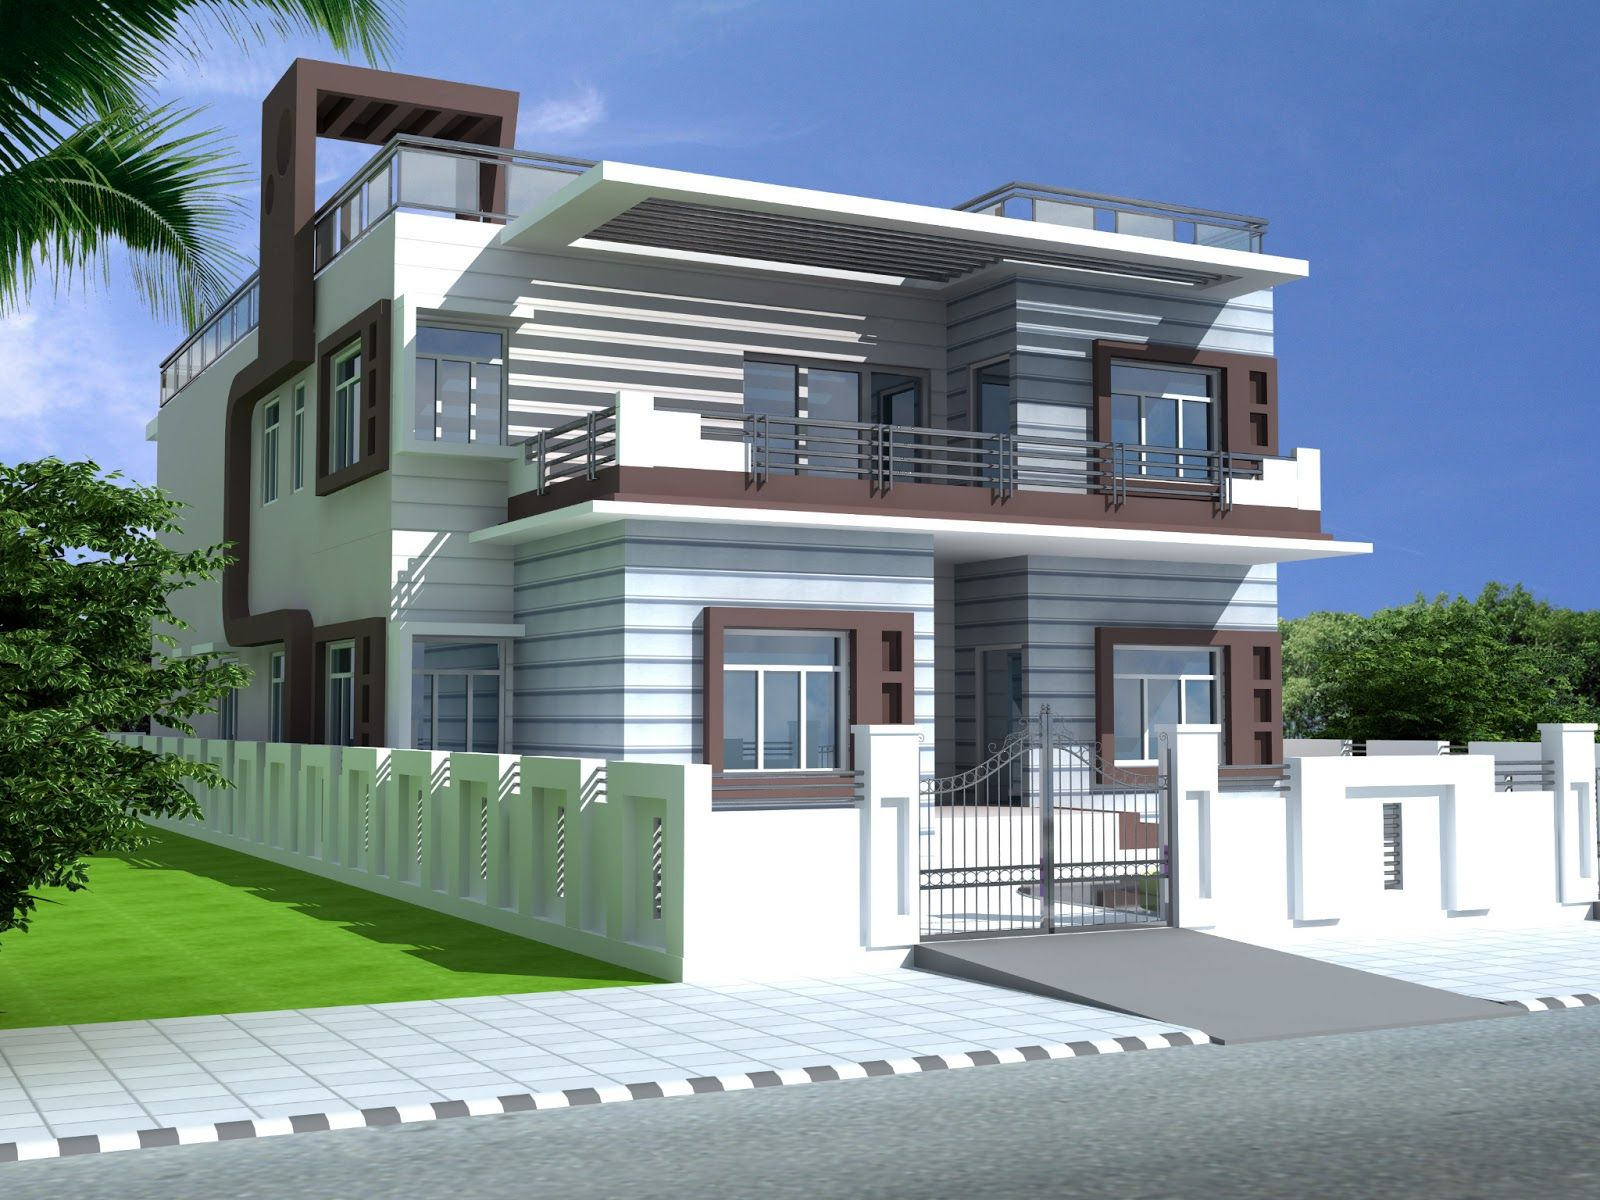 6 bedrooms duplex house design in 390m2 13m x 30m for Independent house plans